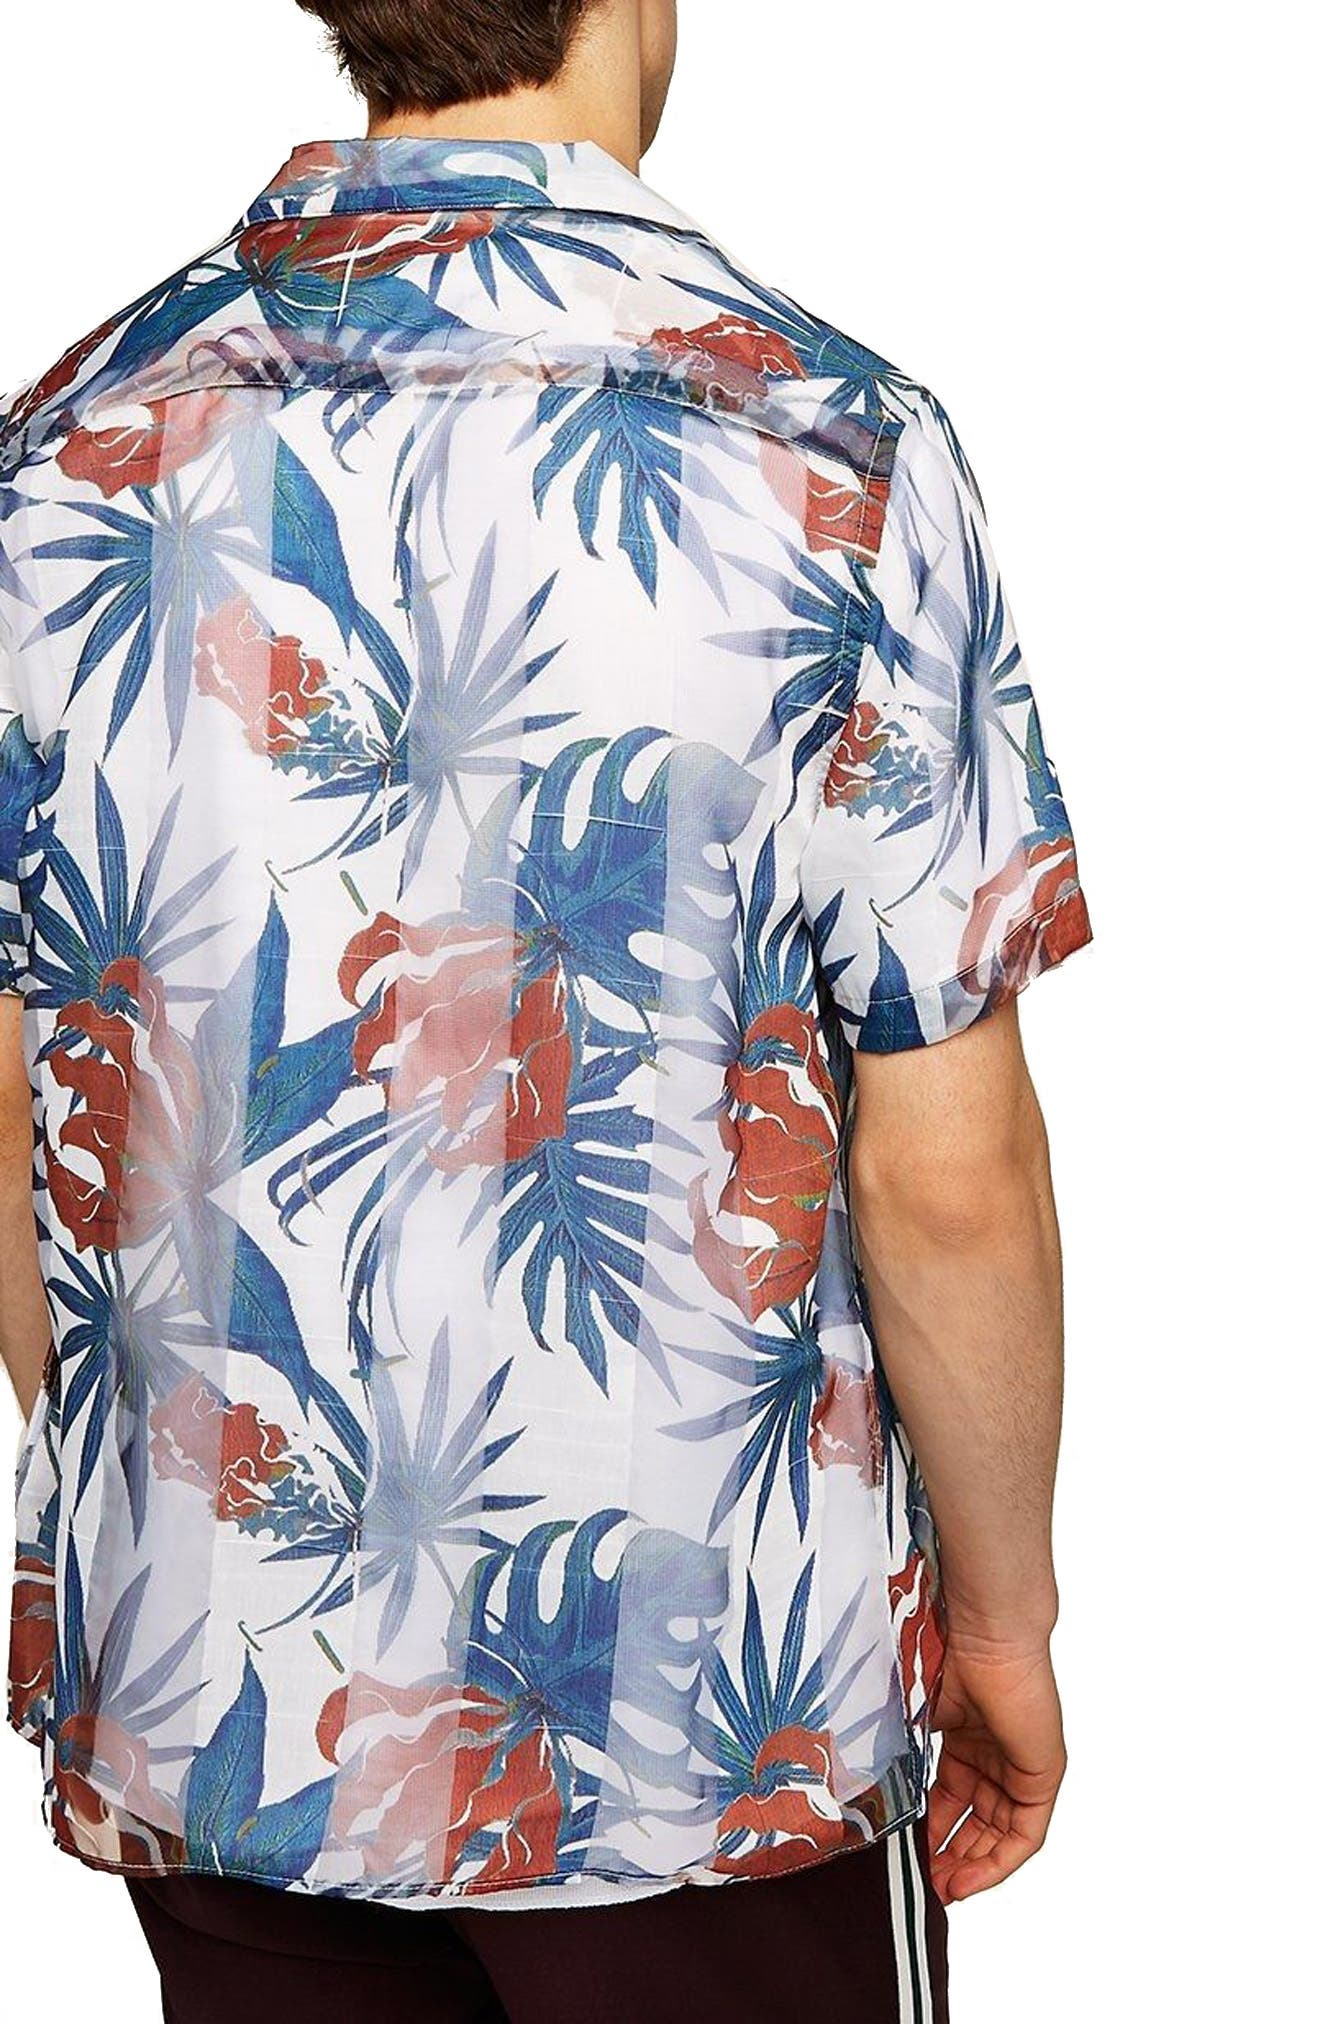 Palm Print Shirt,                             Alternate thumbnail 3, color,                             White Multi